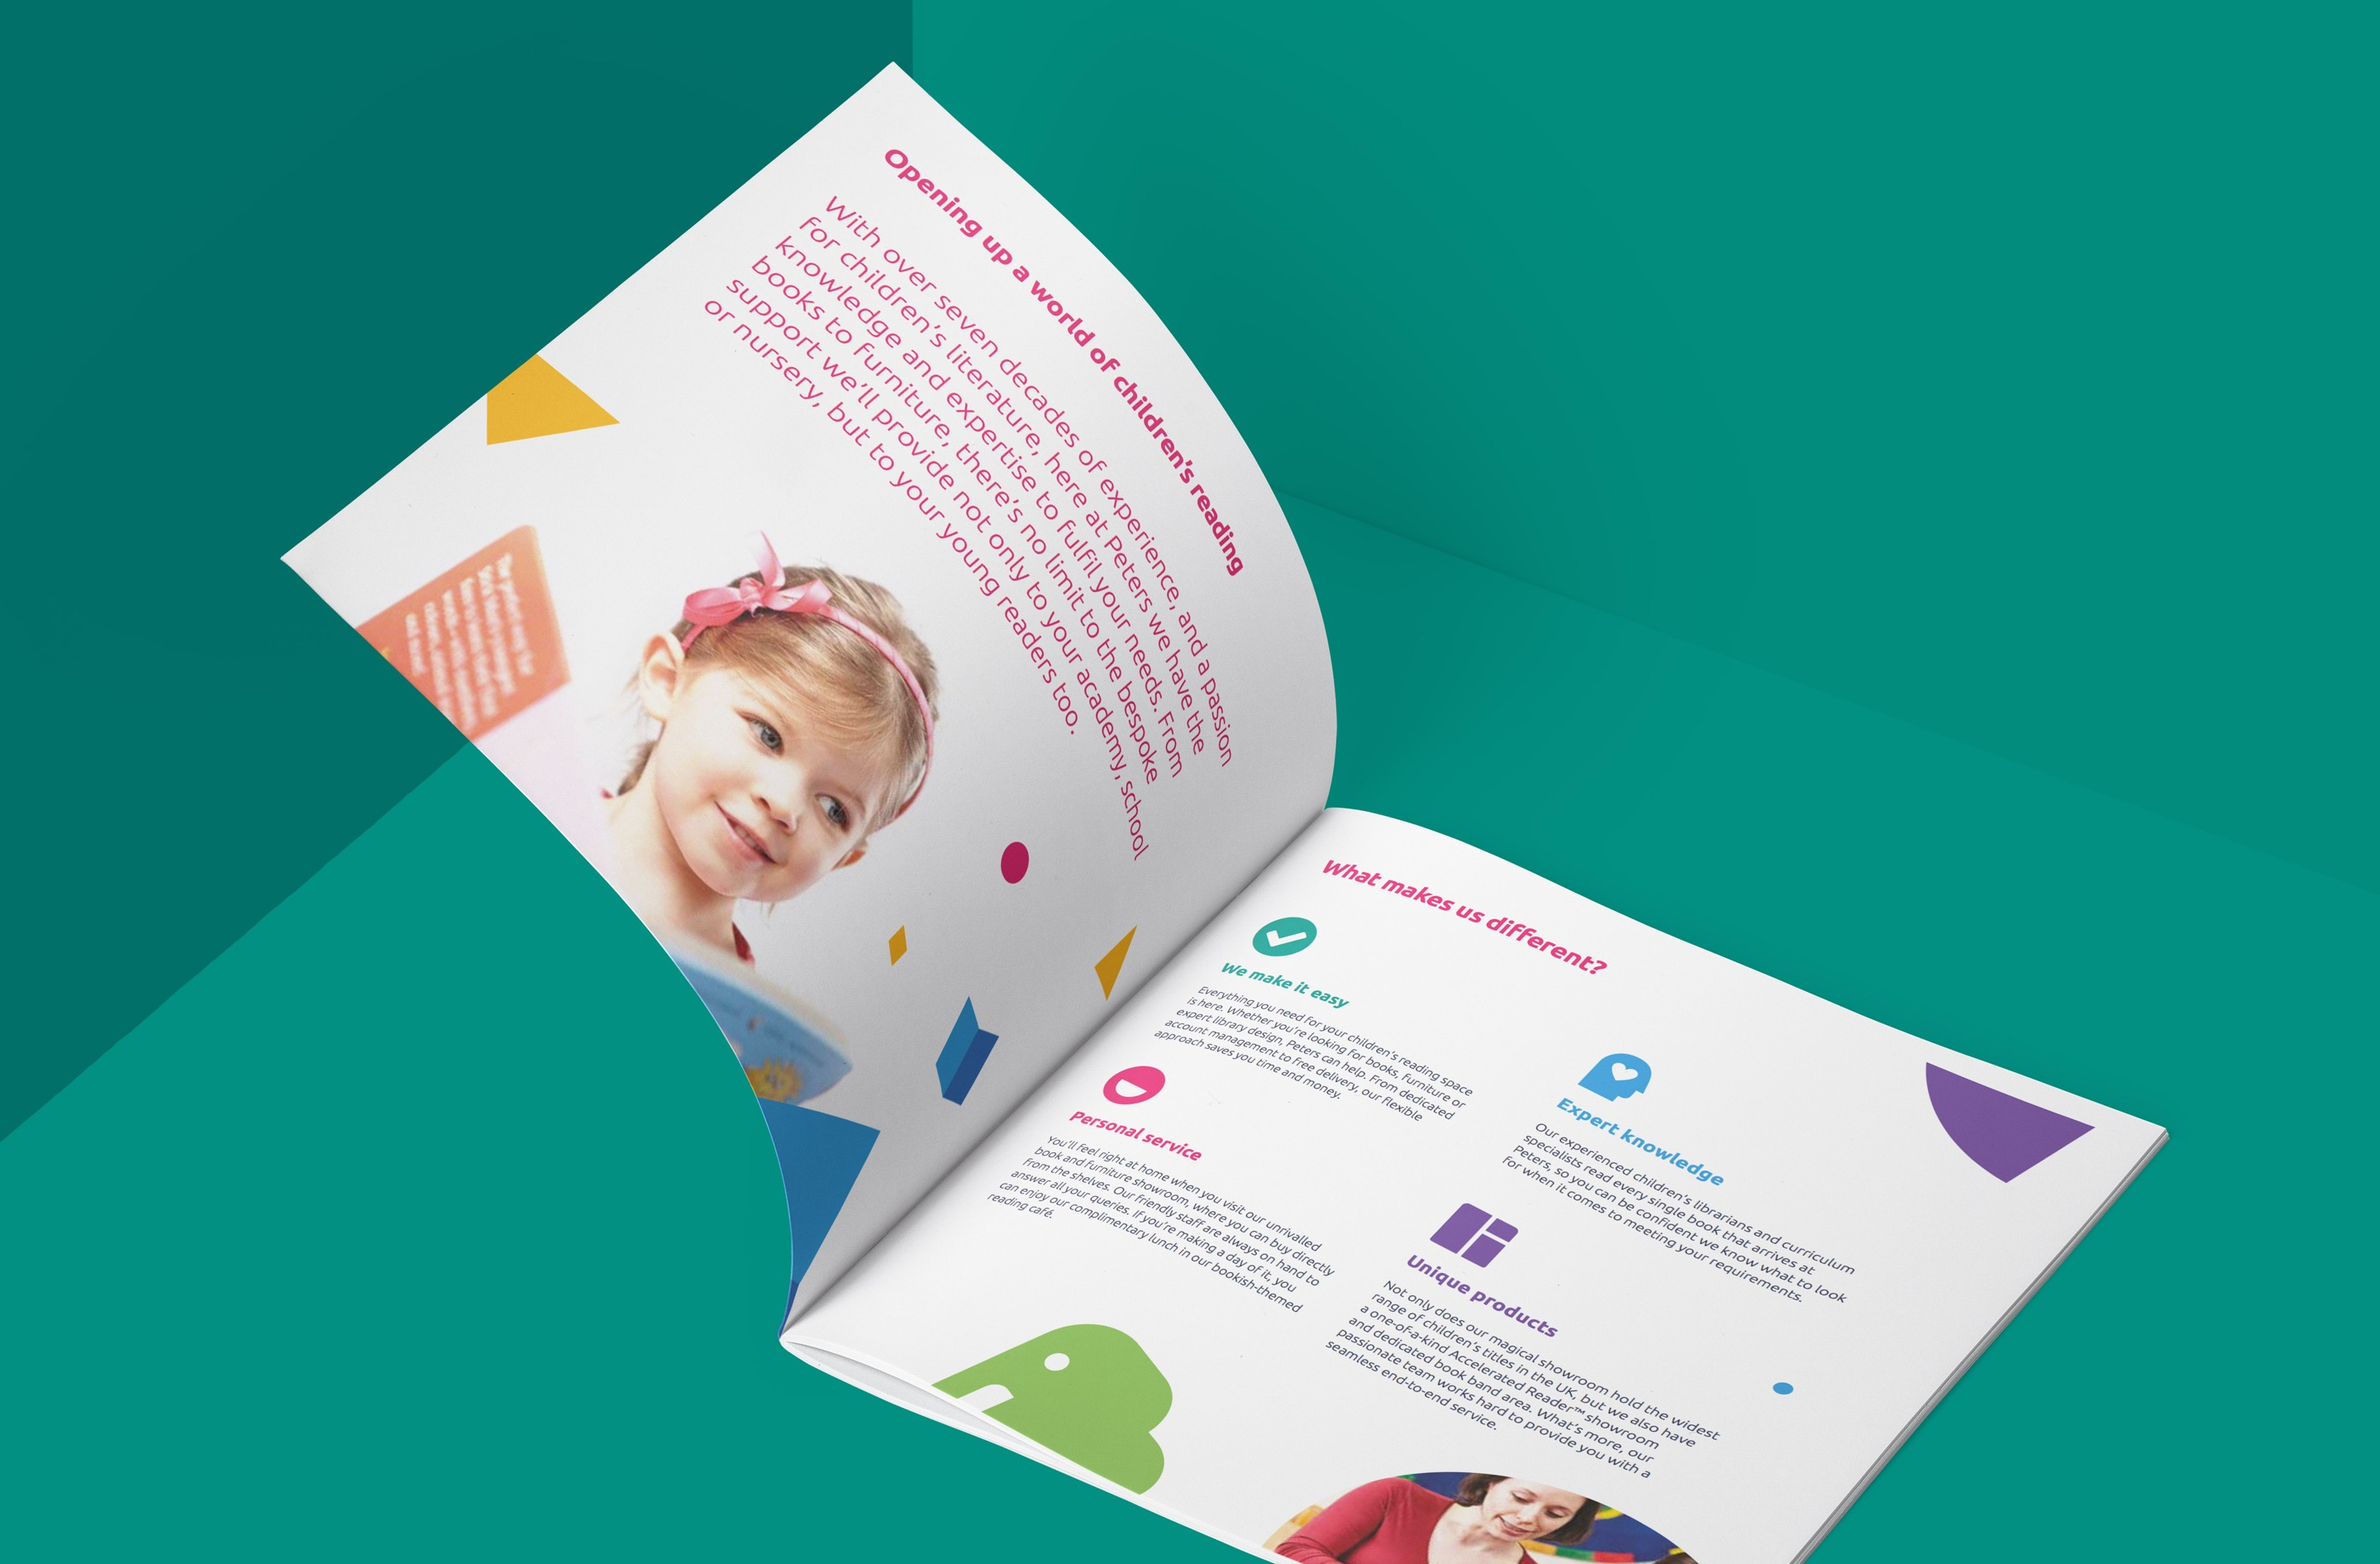 Our brand strategy included print design for brochures